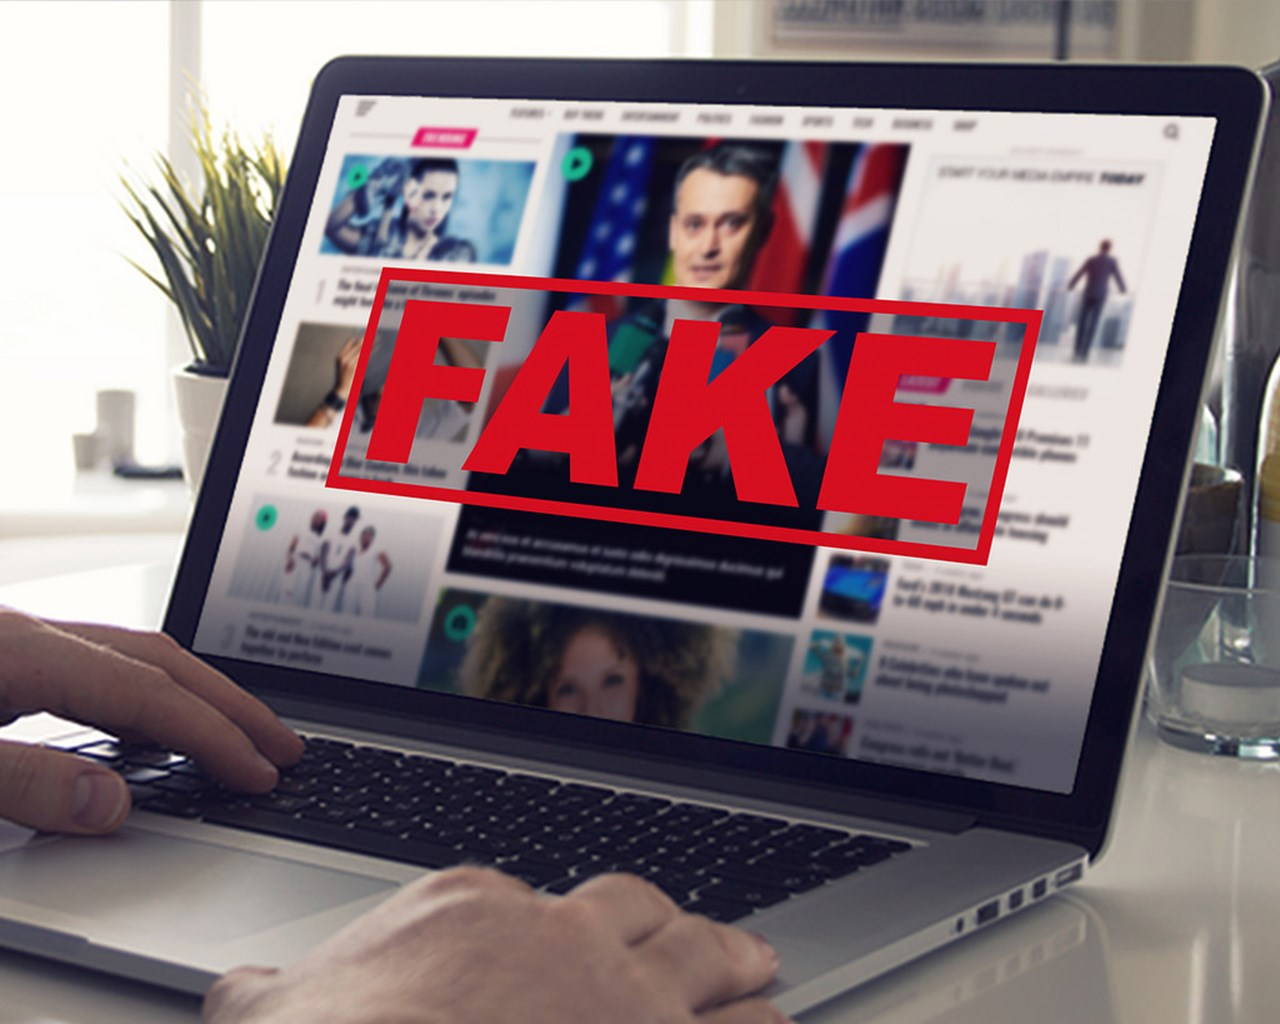 Malaysia proposes 10 year jail term, hefty fines for fake news